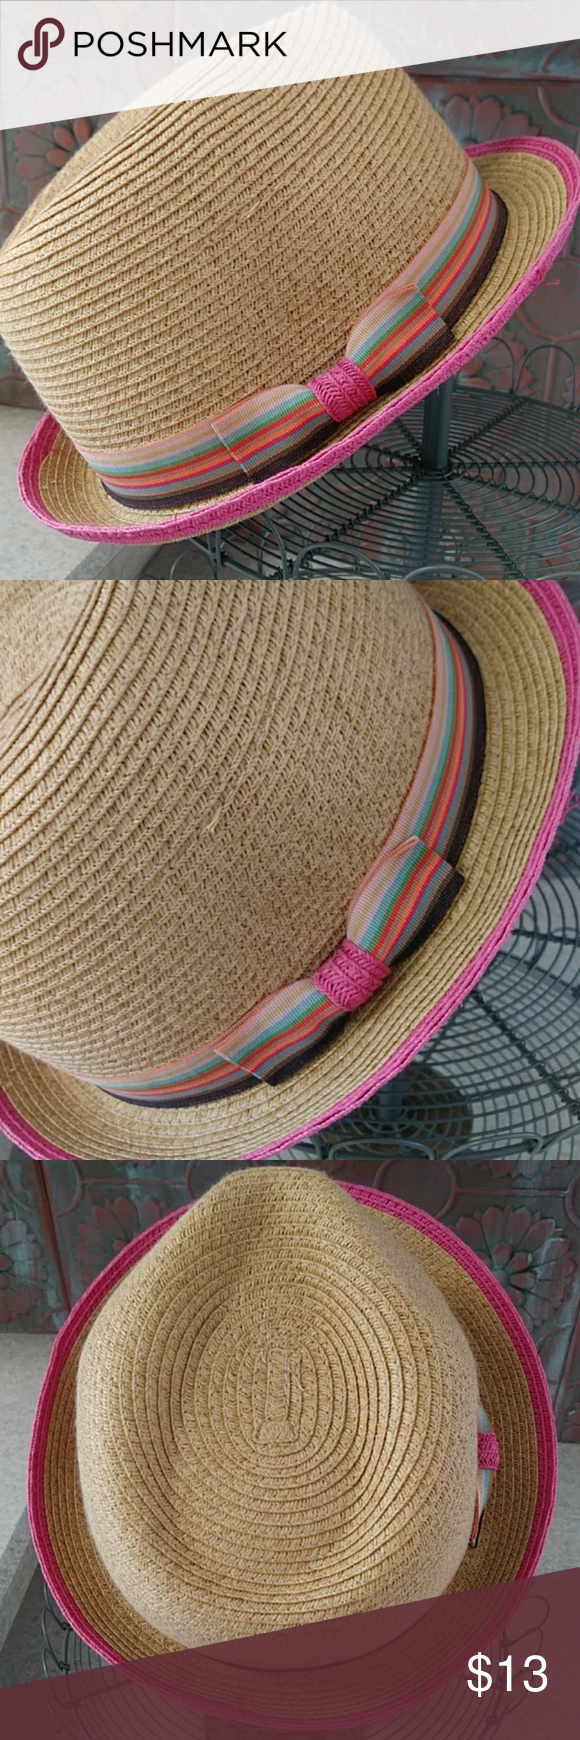 Cute straw hat w pink rim & multicolored ribbon This is a super cute women's hat. Straw type lightweight hat w pink trim. Has multicolored ribbon around w bow. Worn 1x. Great condition. unbranded Accessories Hats #pinkrims Cute straw hat w pink rim & multicolored ribbon This is a super cute women's hat. Straw type lightweight hat w pink trim. Has multicolored ribbon around w bow. Worn 1x. Great condition. unbranded Accessories Hats #pinkrims Cute straw hat w pink rim & multicolored ribbon This i #pinkrims